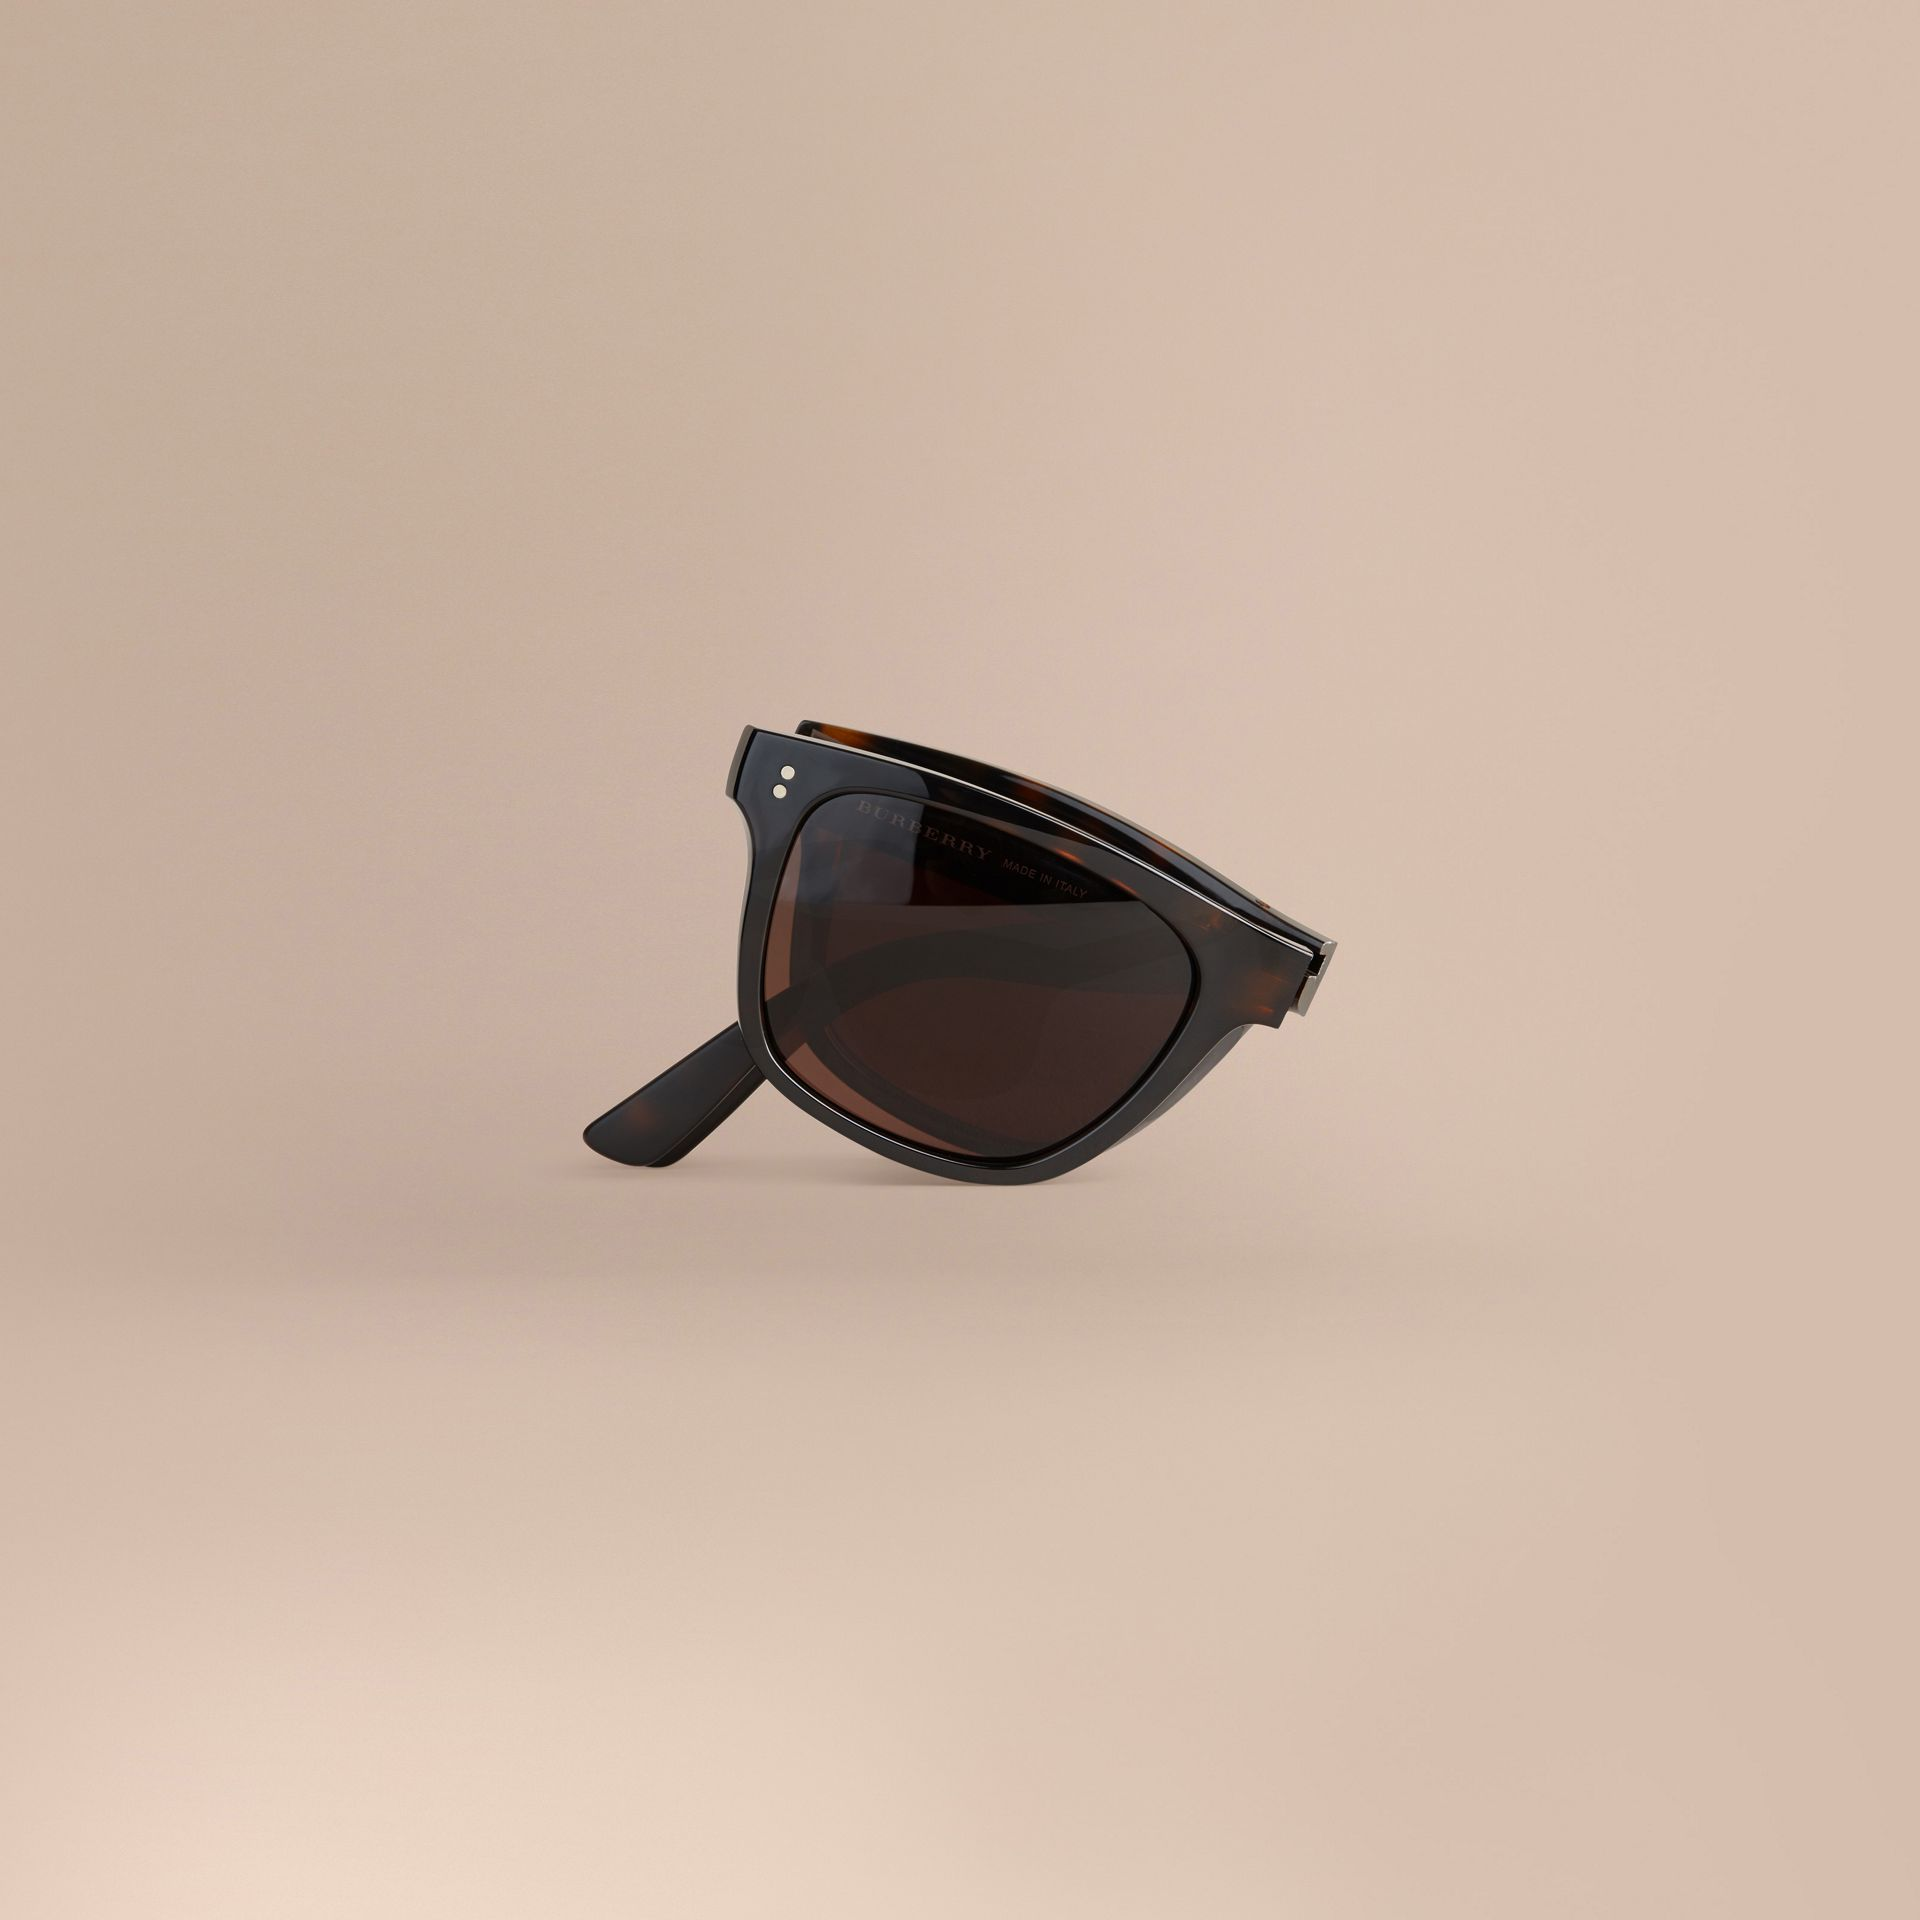 Folding Rectangular Frame Sunglasses in Dark Brown - Men | Burberry Canada - gallery image 1